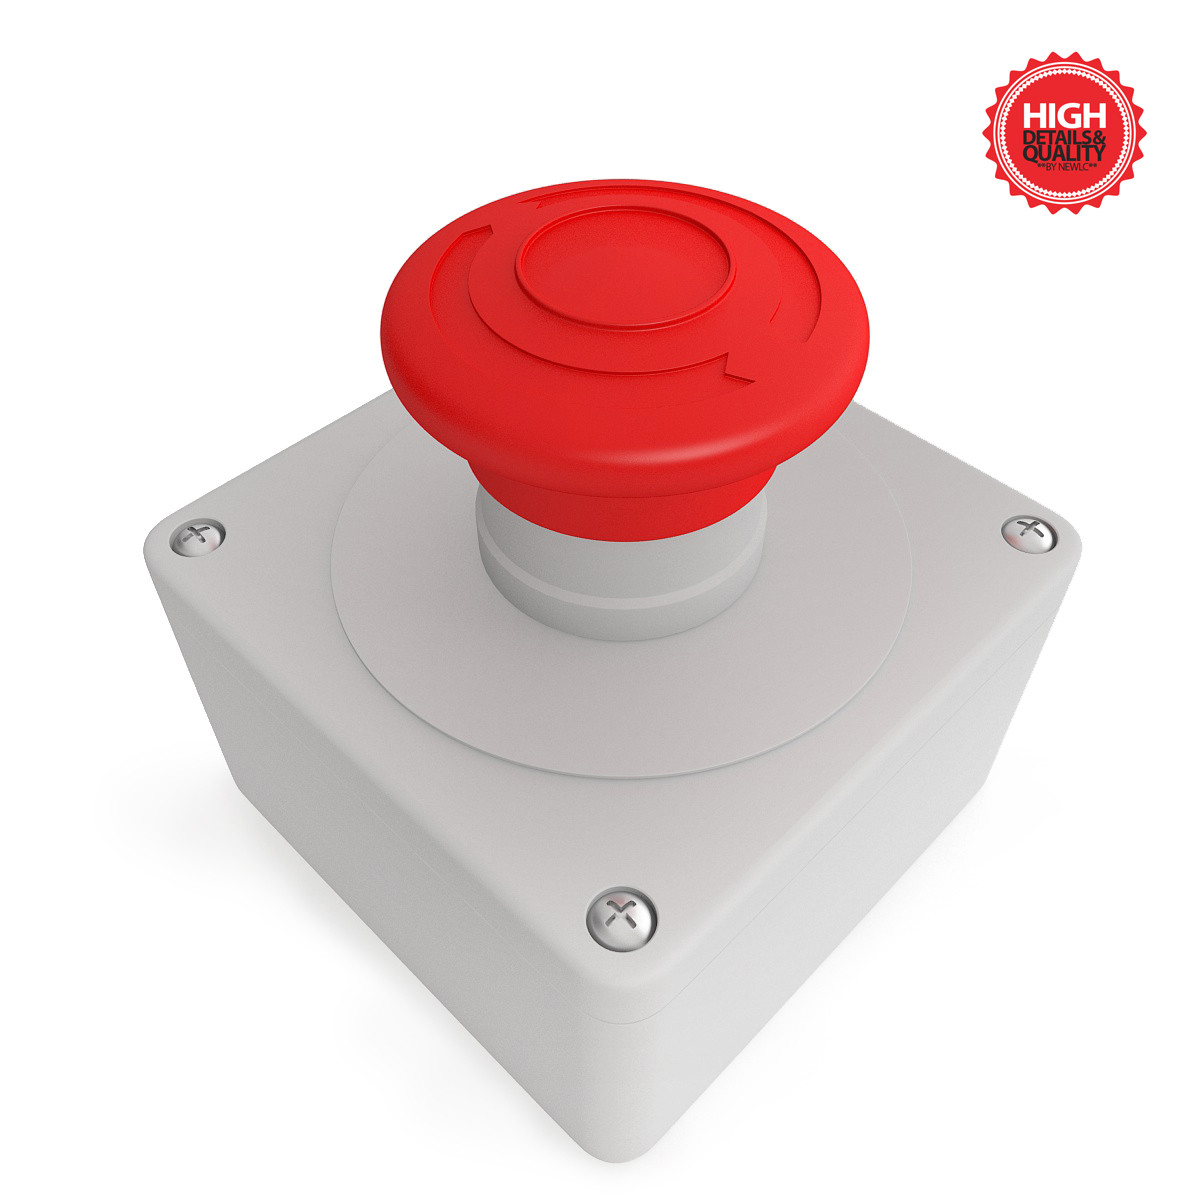 button alert red 3ds